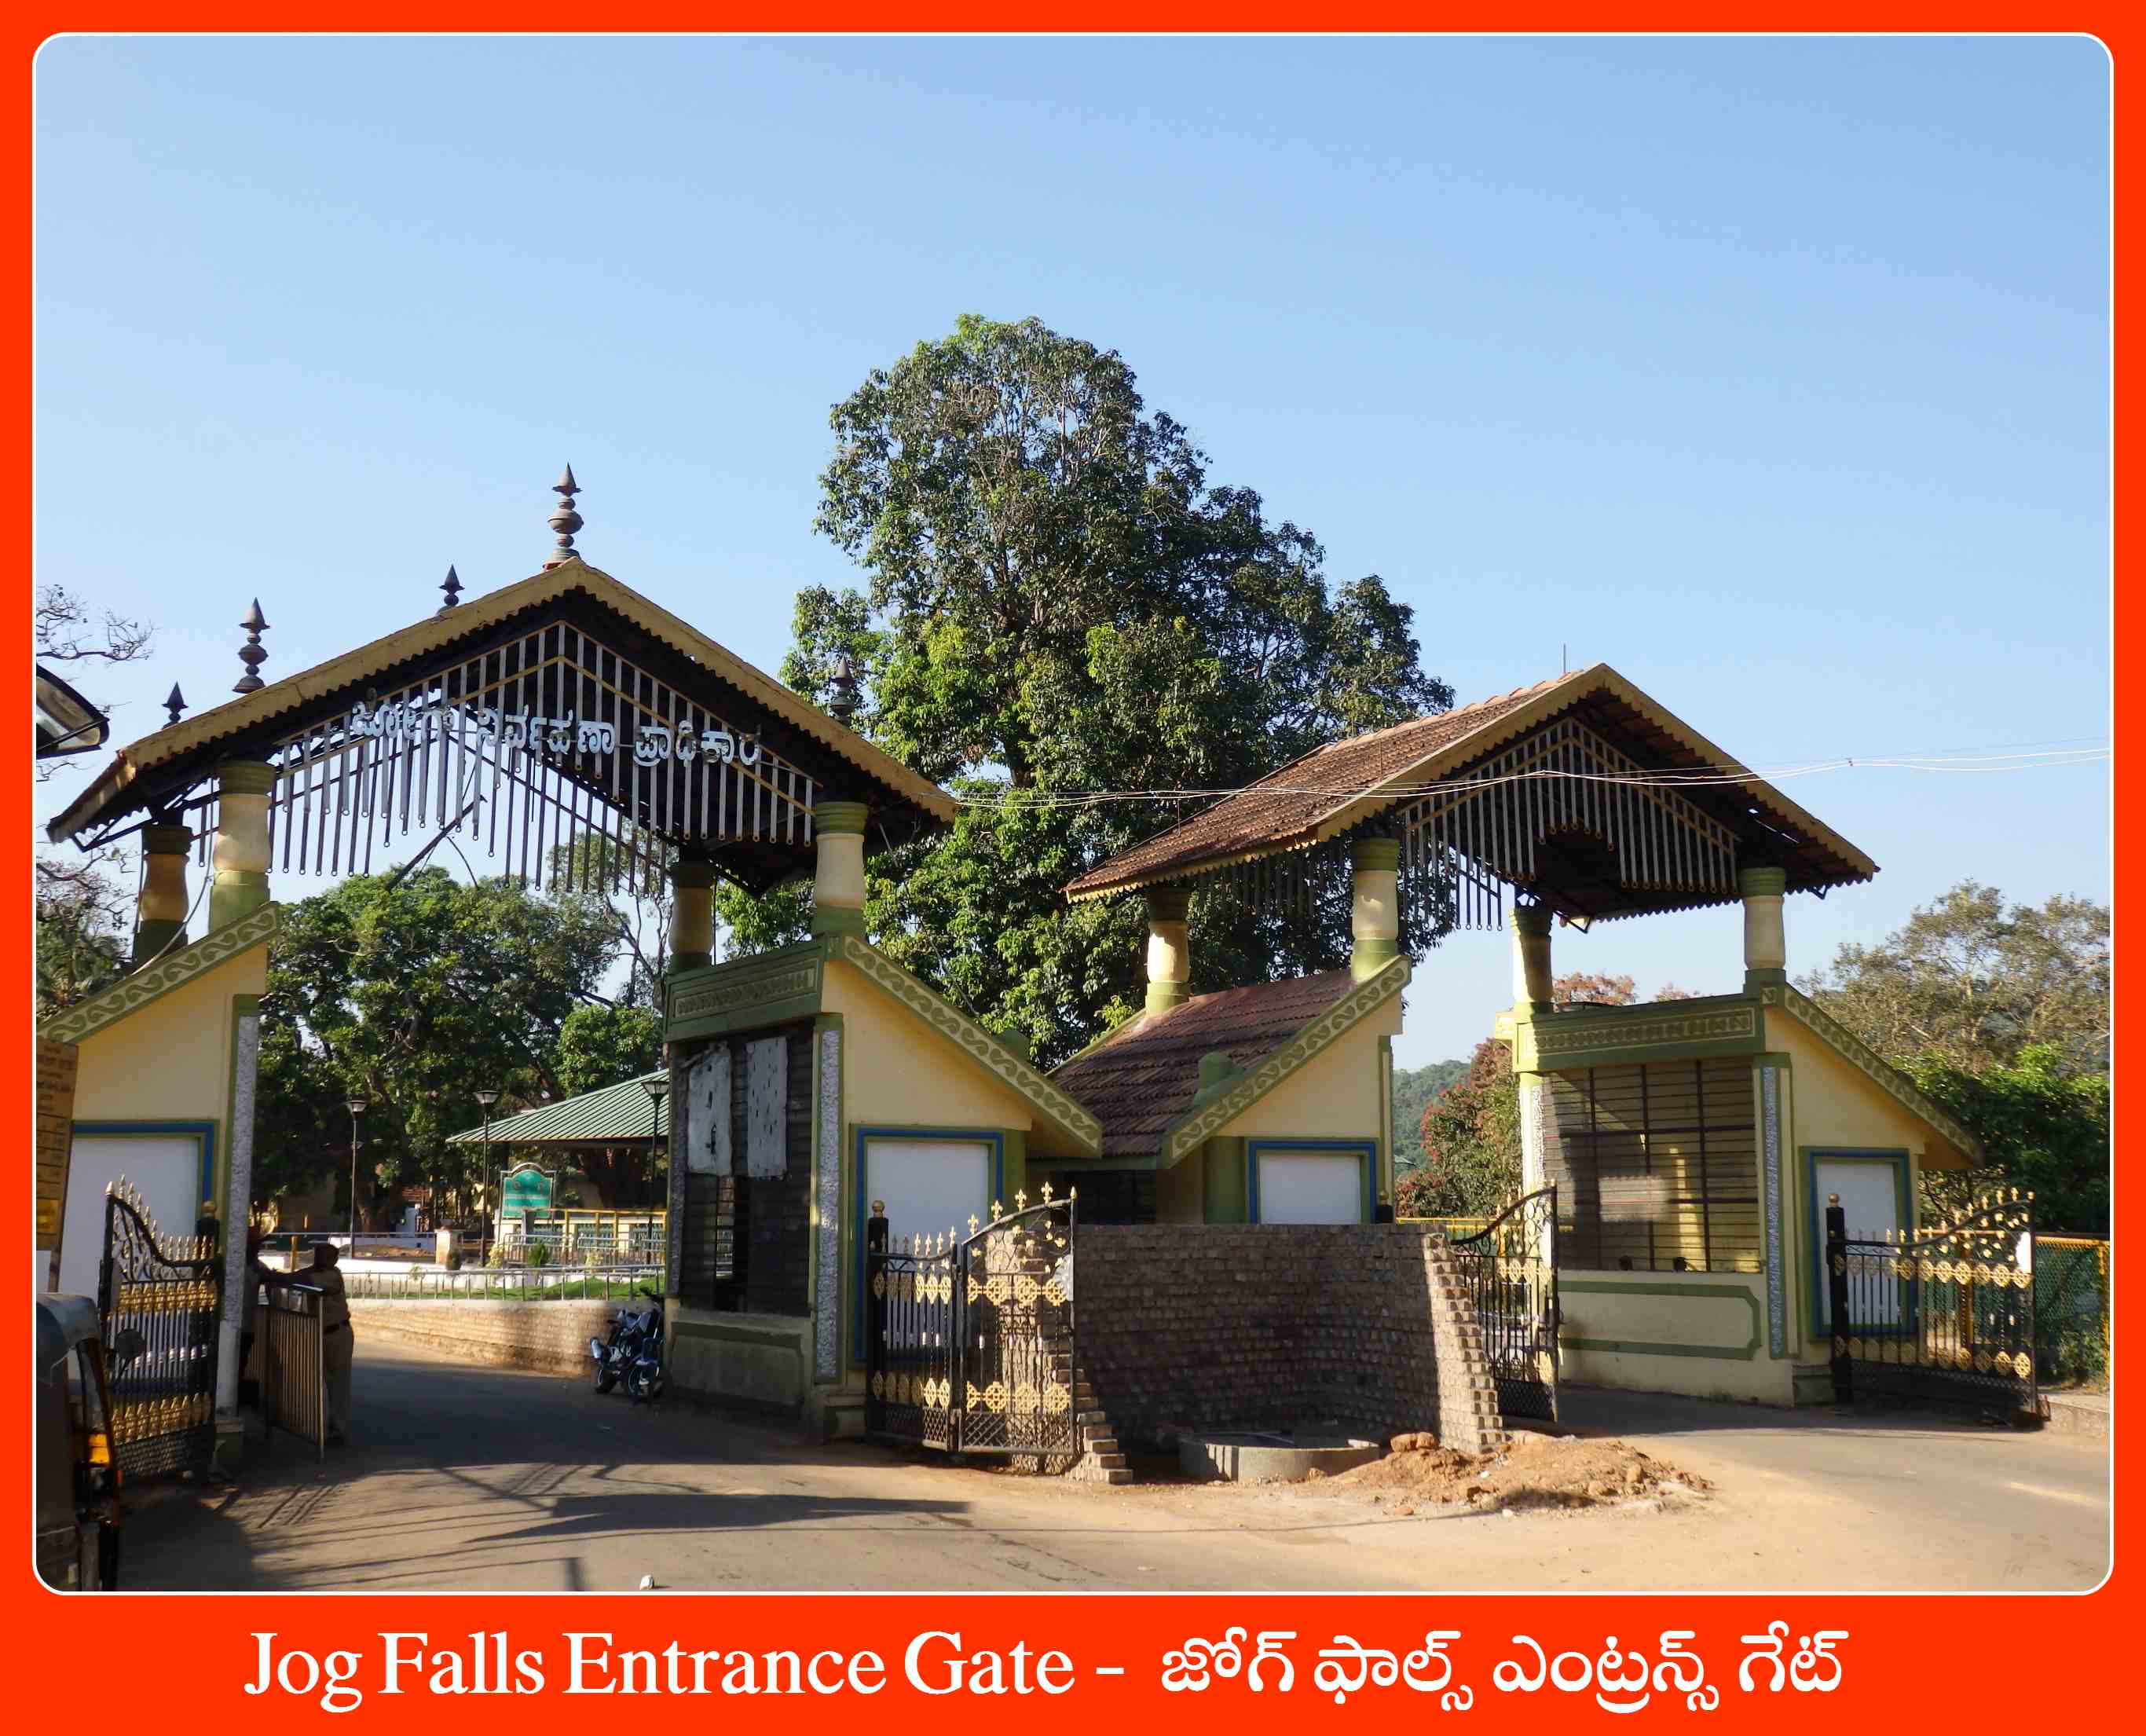 Jog Falls Entrance Gate